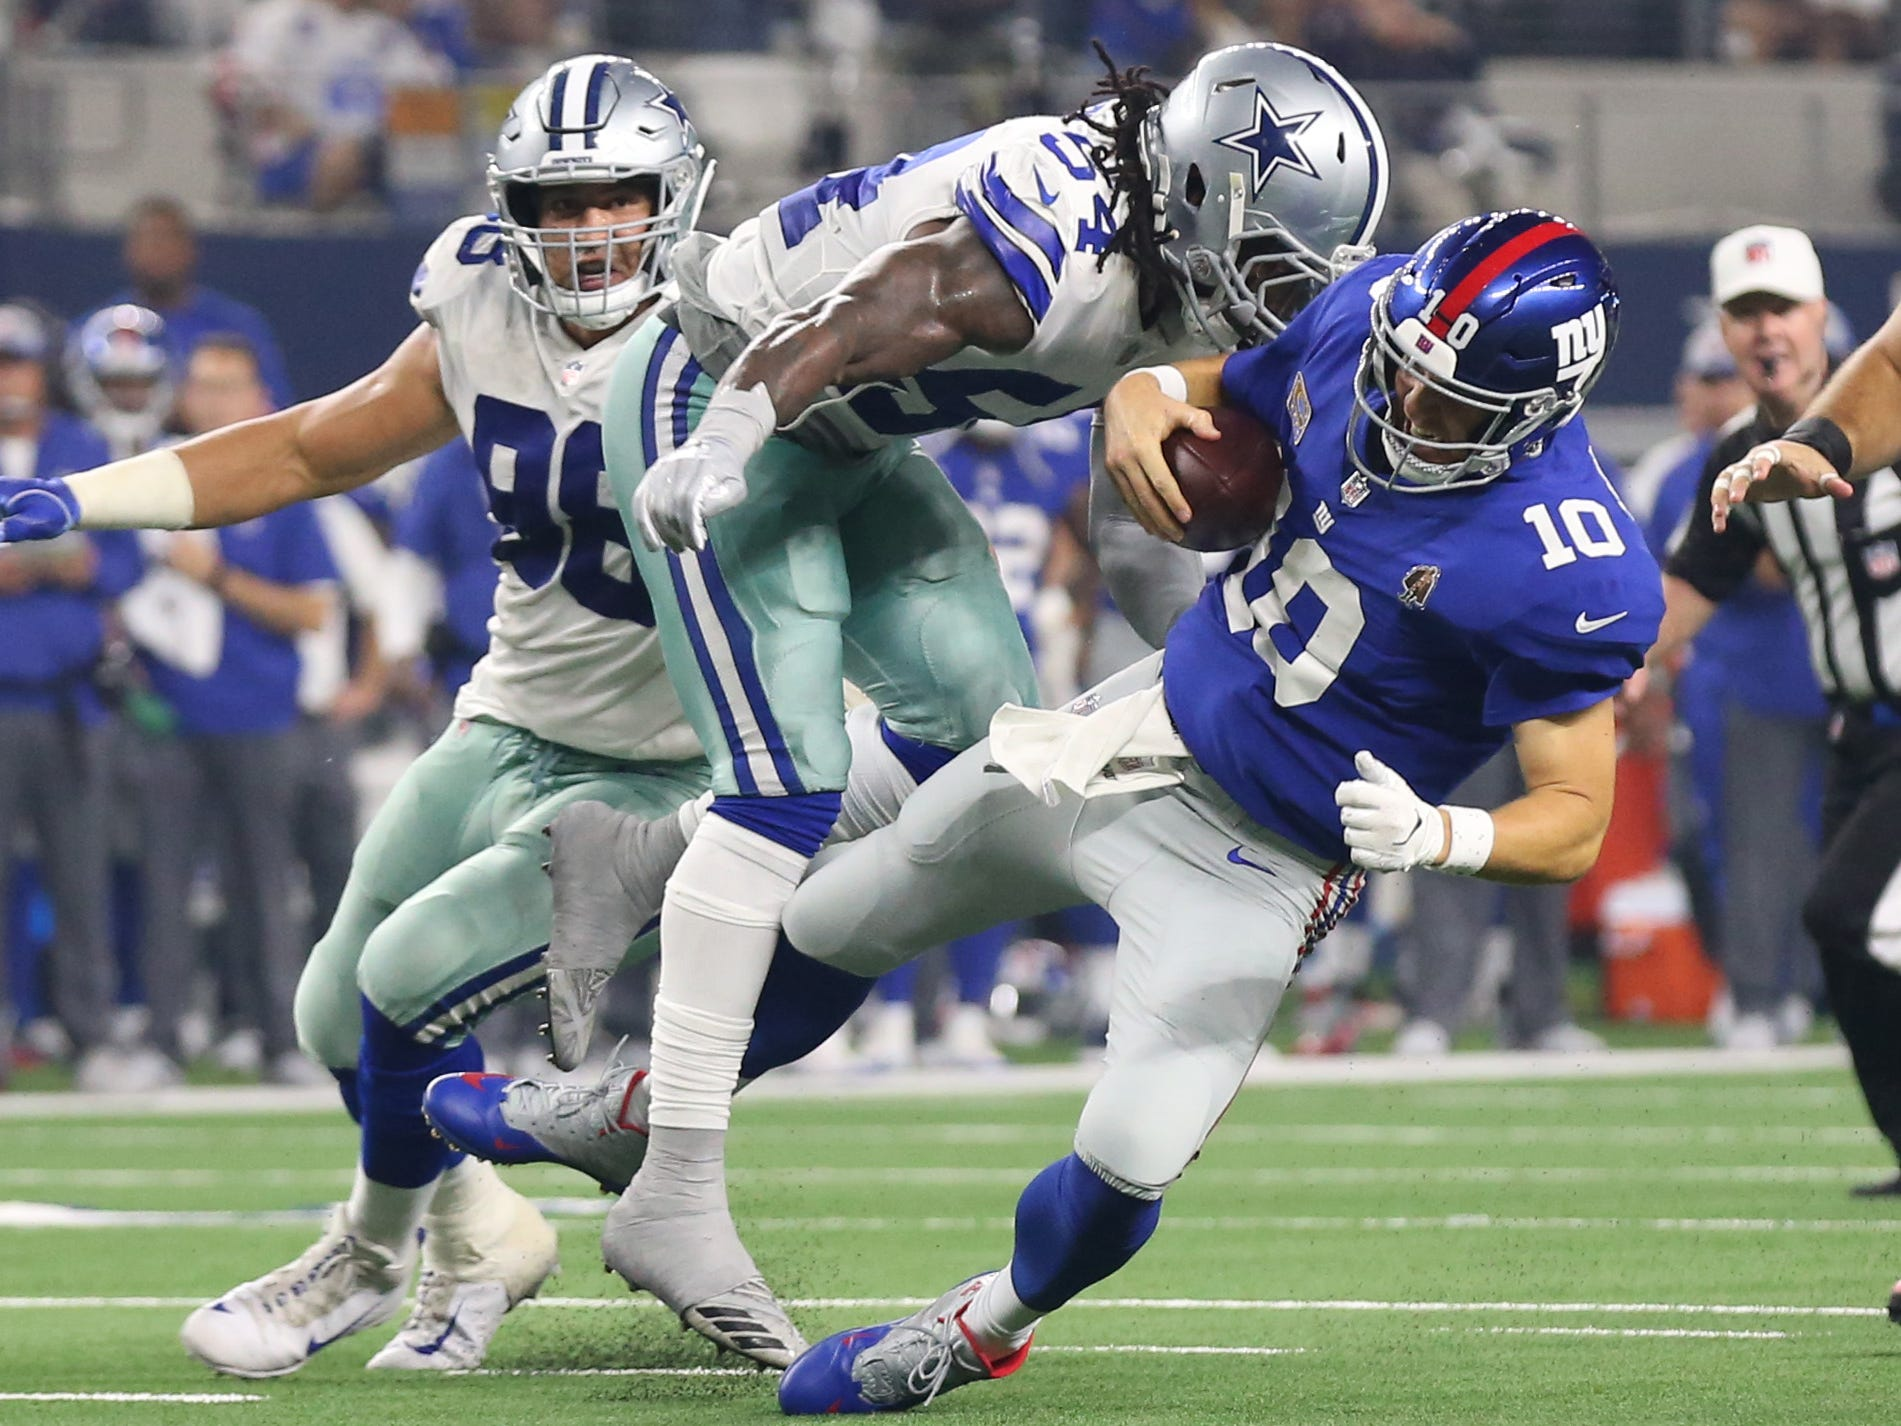 26. Cowboys (25): Defense is out chute with league-high nine sacks. That will need to continue given lackluster start by Dak Prescott and pass game.